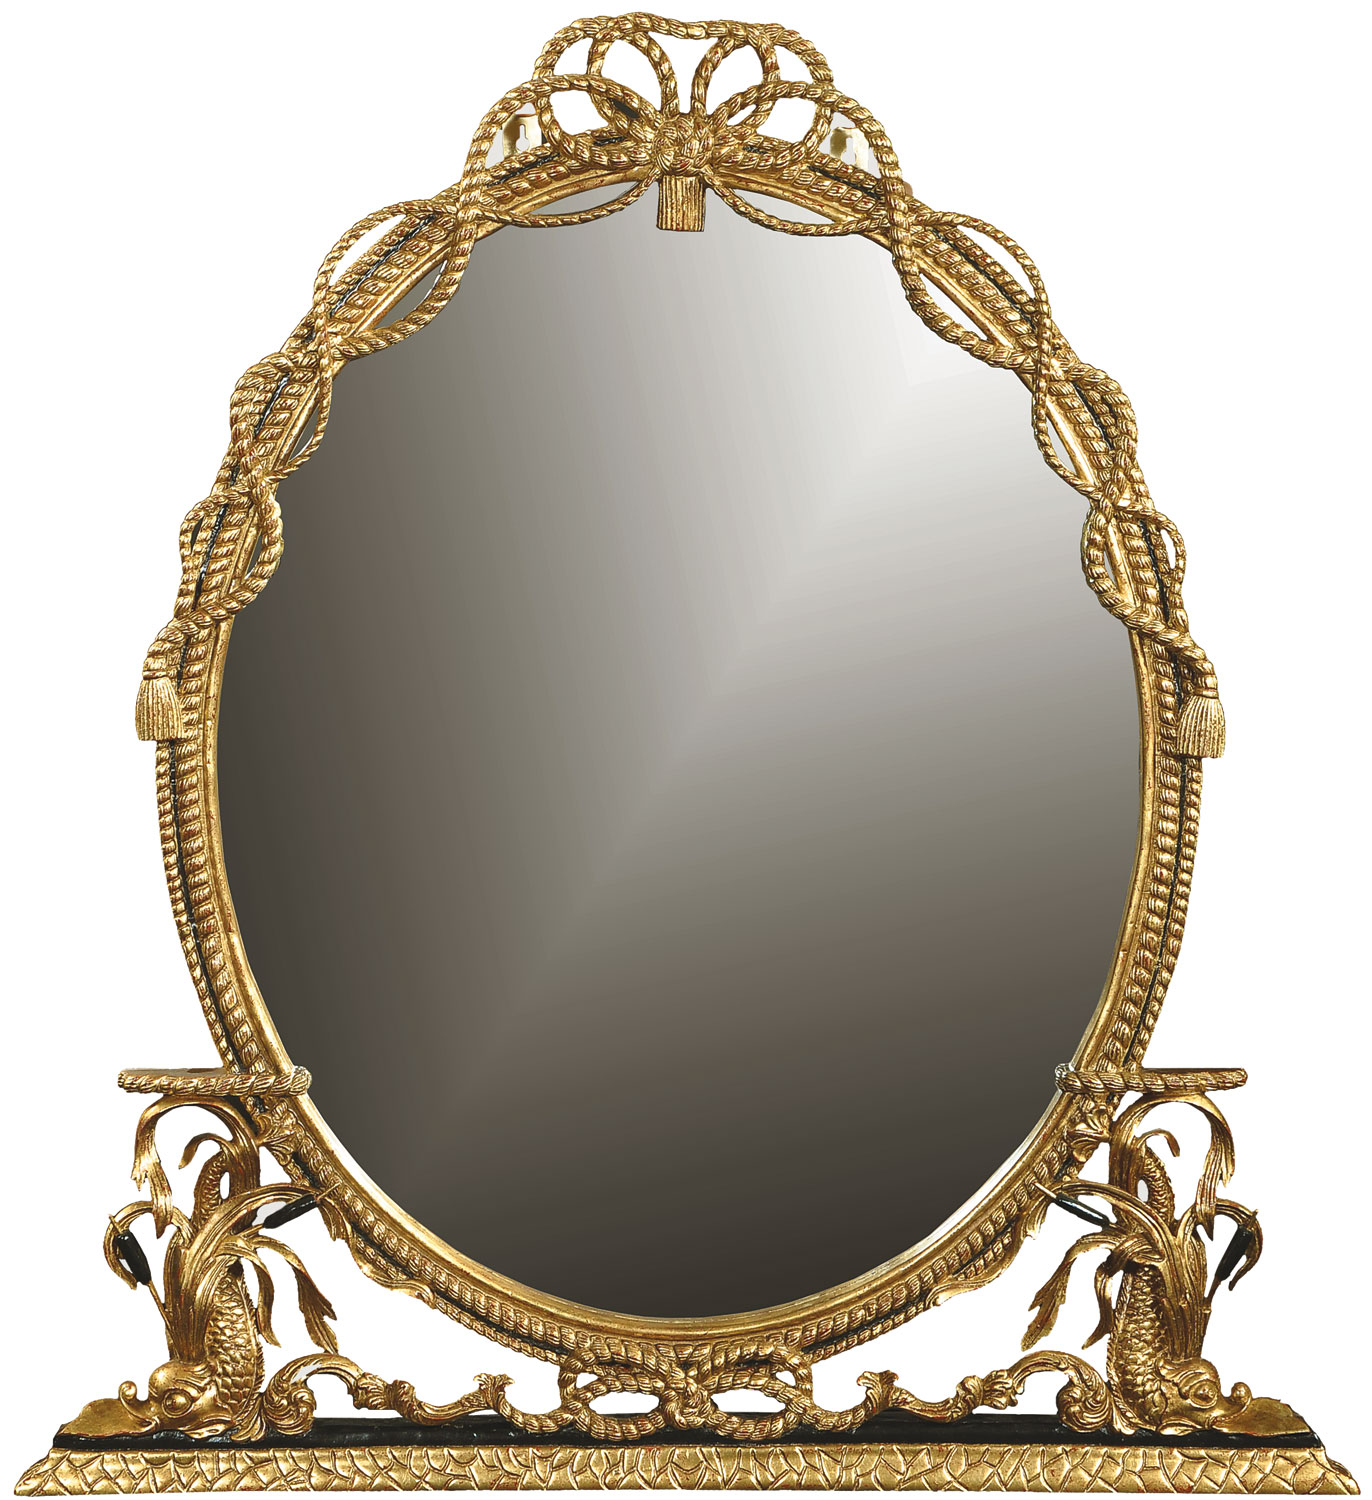 George III style mirror - Antique finish